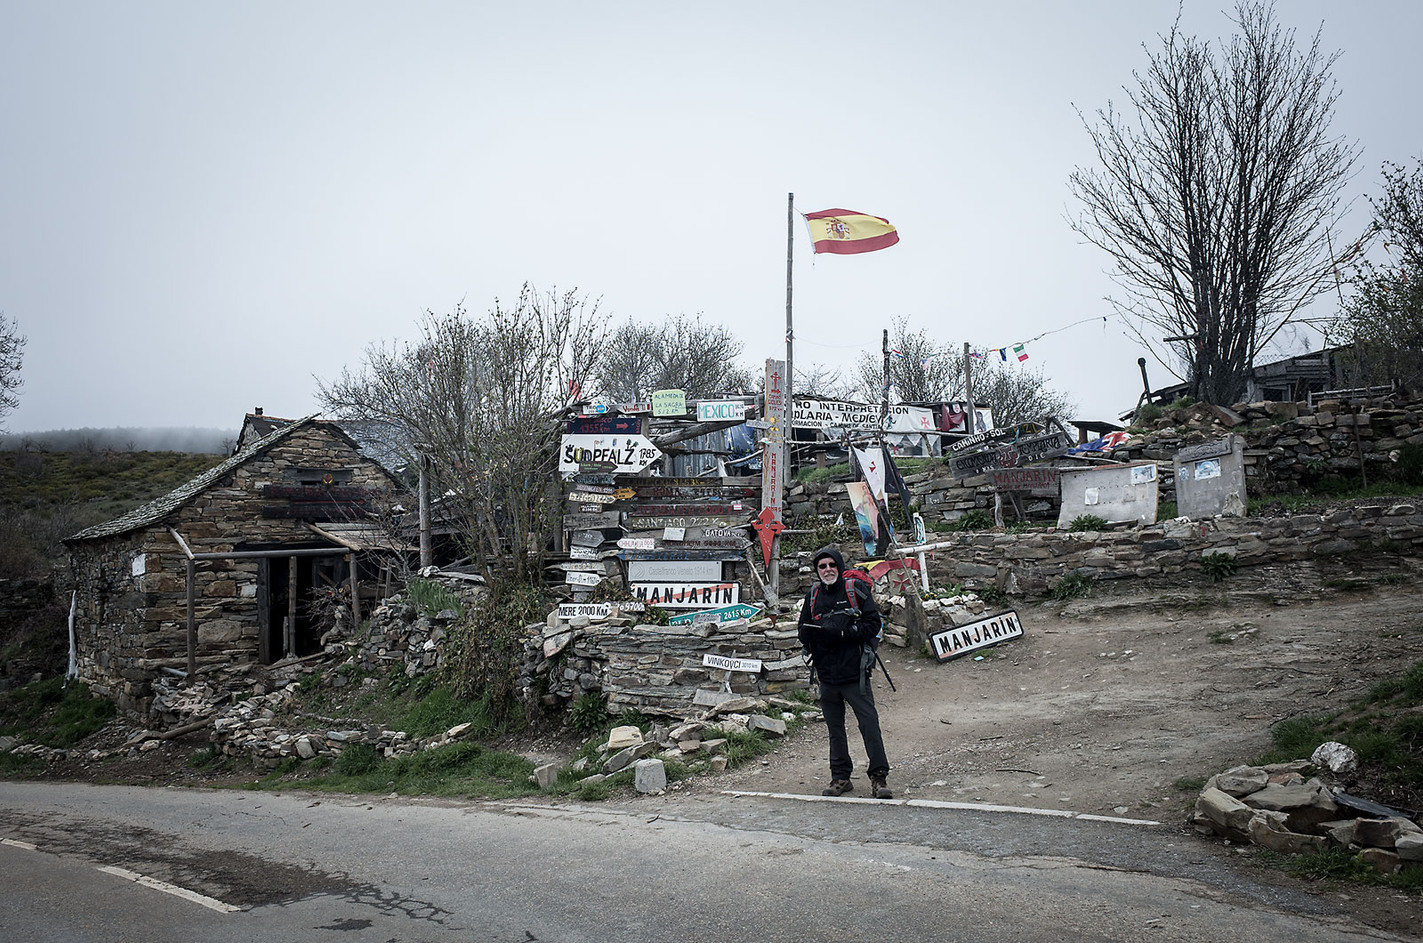 Steve (United Kingdom) enjoys traveling now that he has the time in retirement. He is walking the entire Frances route before meeting his wife in Santiago de Compostela to travel a few weeks together in Portugal.